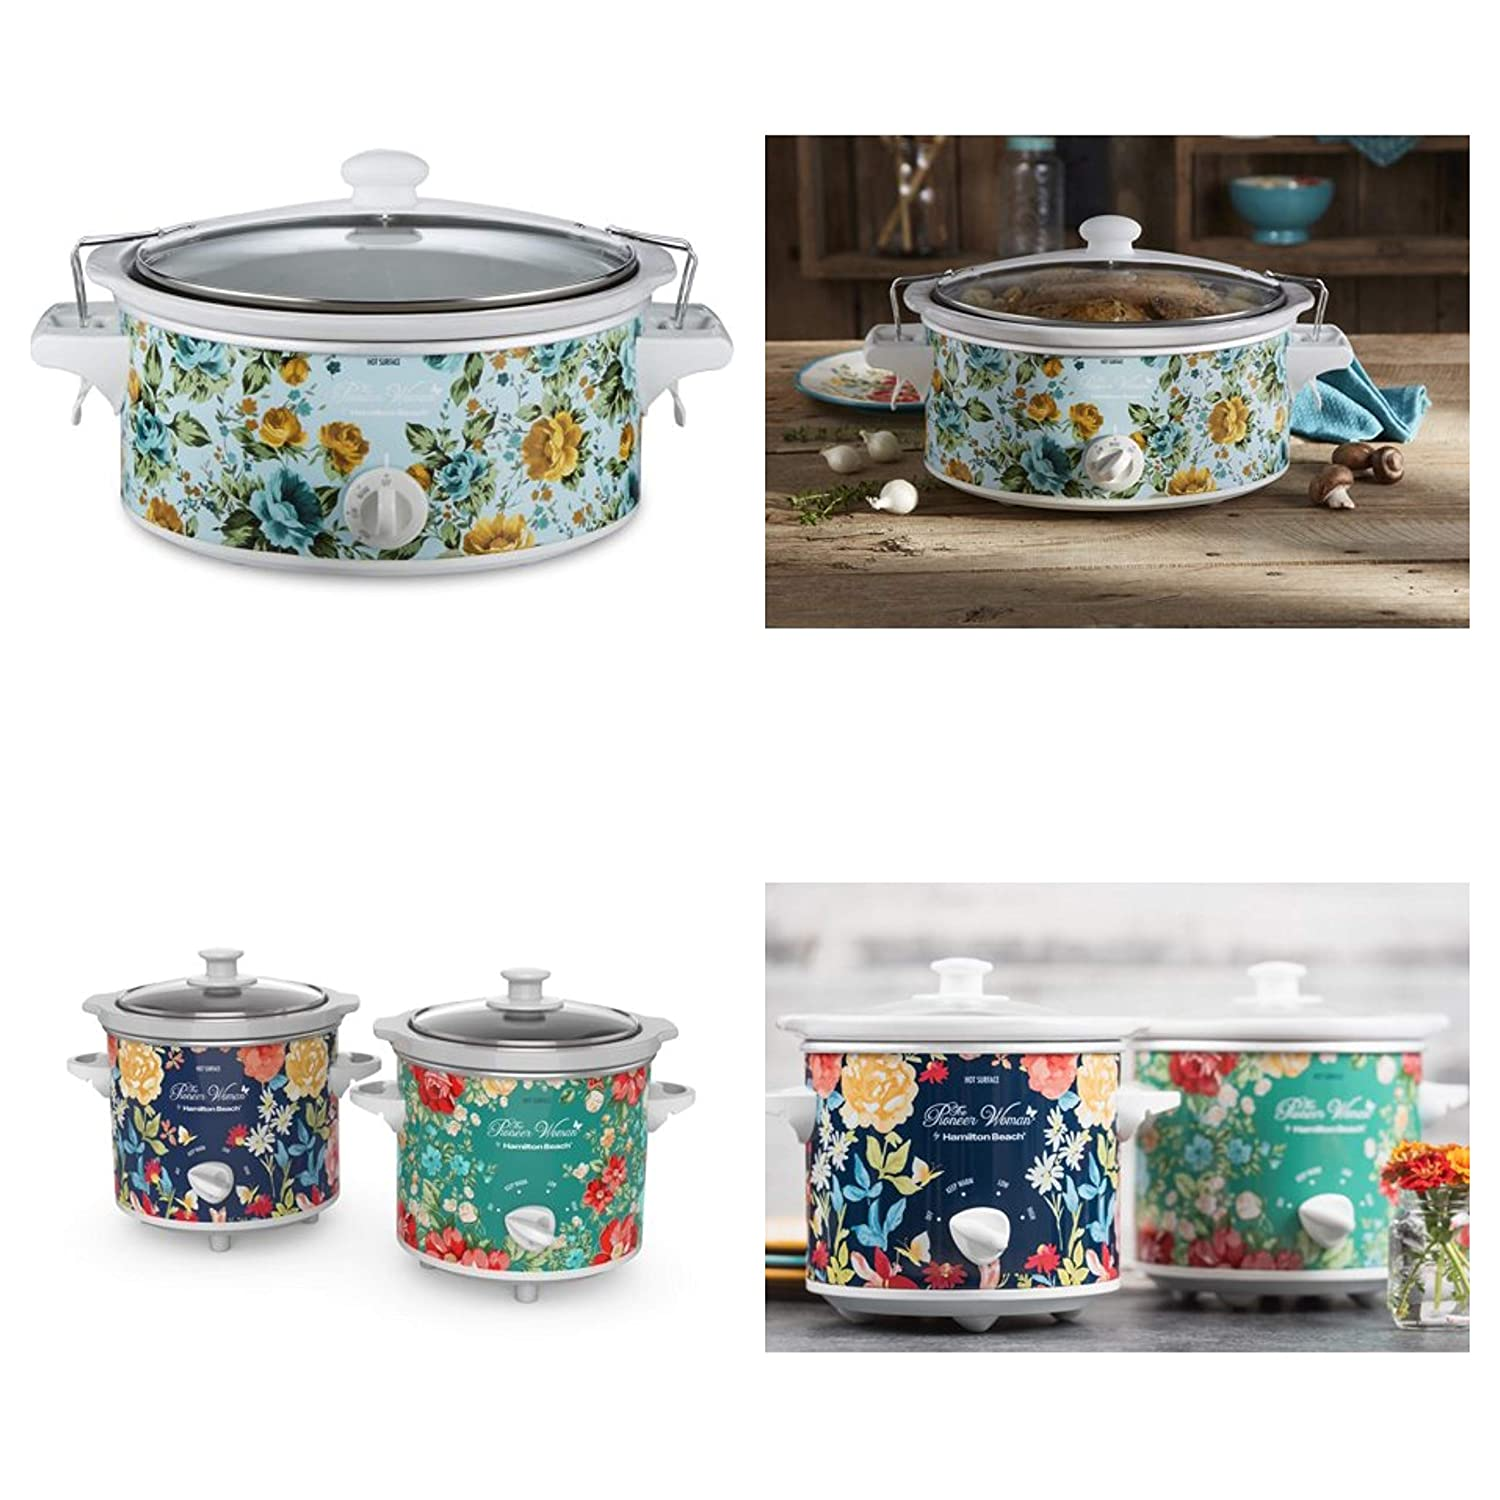 Pioneer Woman 6 Quart Portable Slow Cooker Rose Shadow Bundle with 1.5 Quart Slow Cooker (Set of 2) Fiona Floral/Vintage Floral